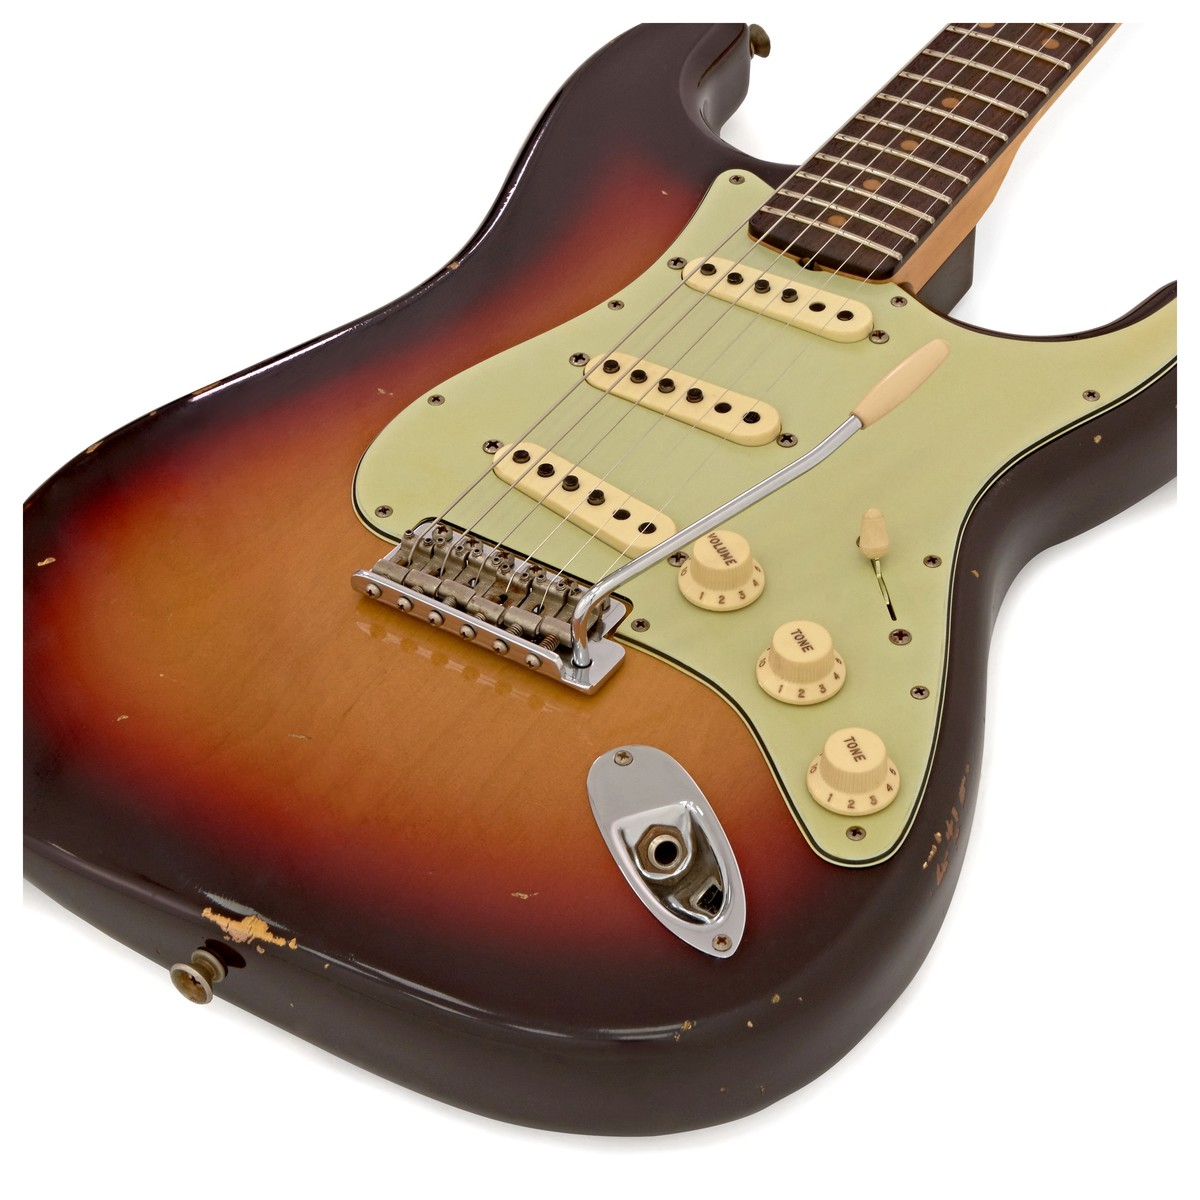 Strat Pickup Wiring Manual Of Diagram Stratocaster 1960 Fender Custom Shop Relic Chocolate 3 Options Mods